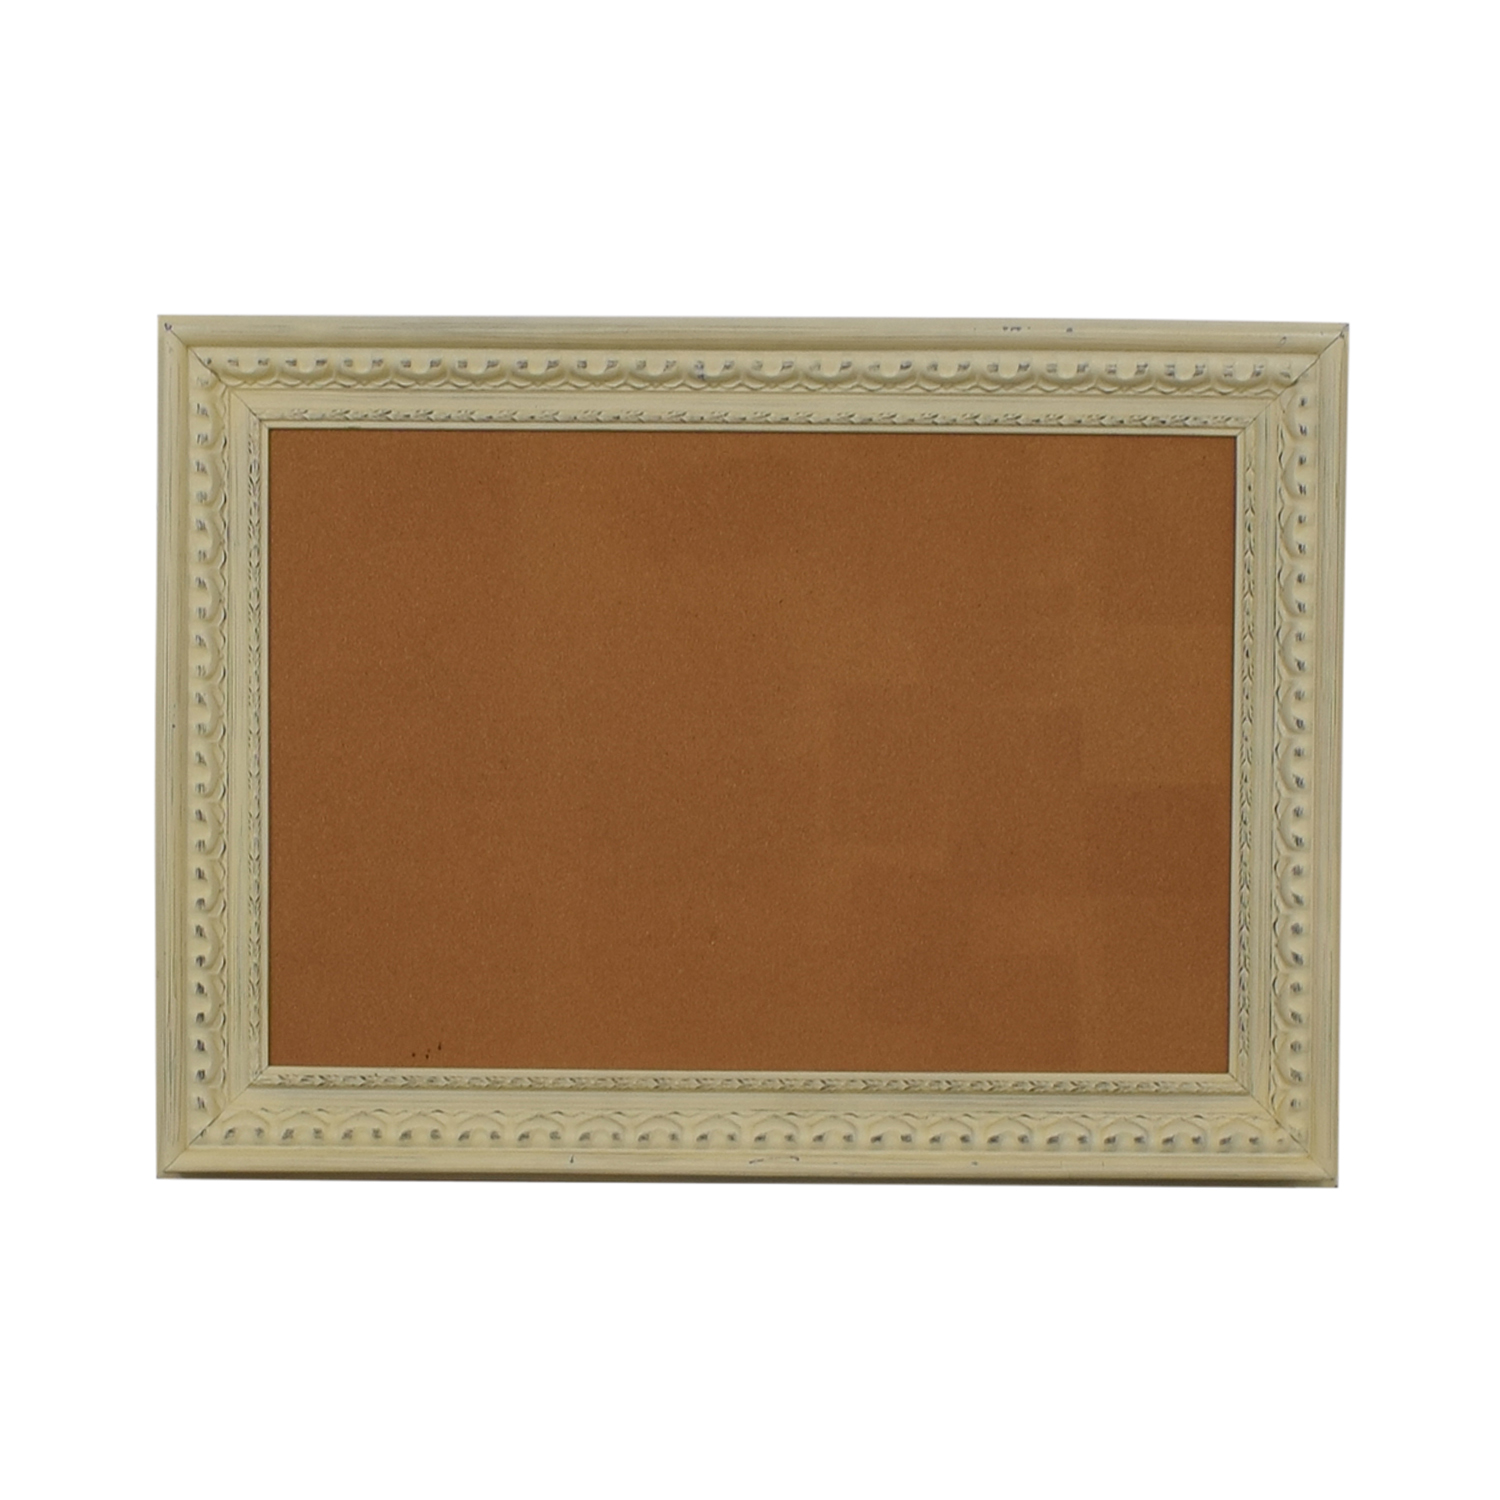 buy Rustic Framed Cork Board Ballard Design